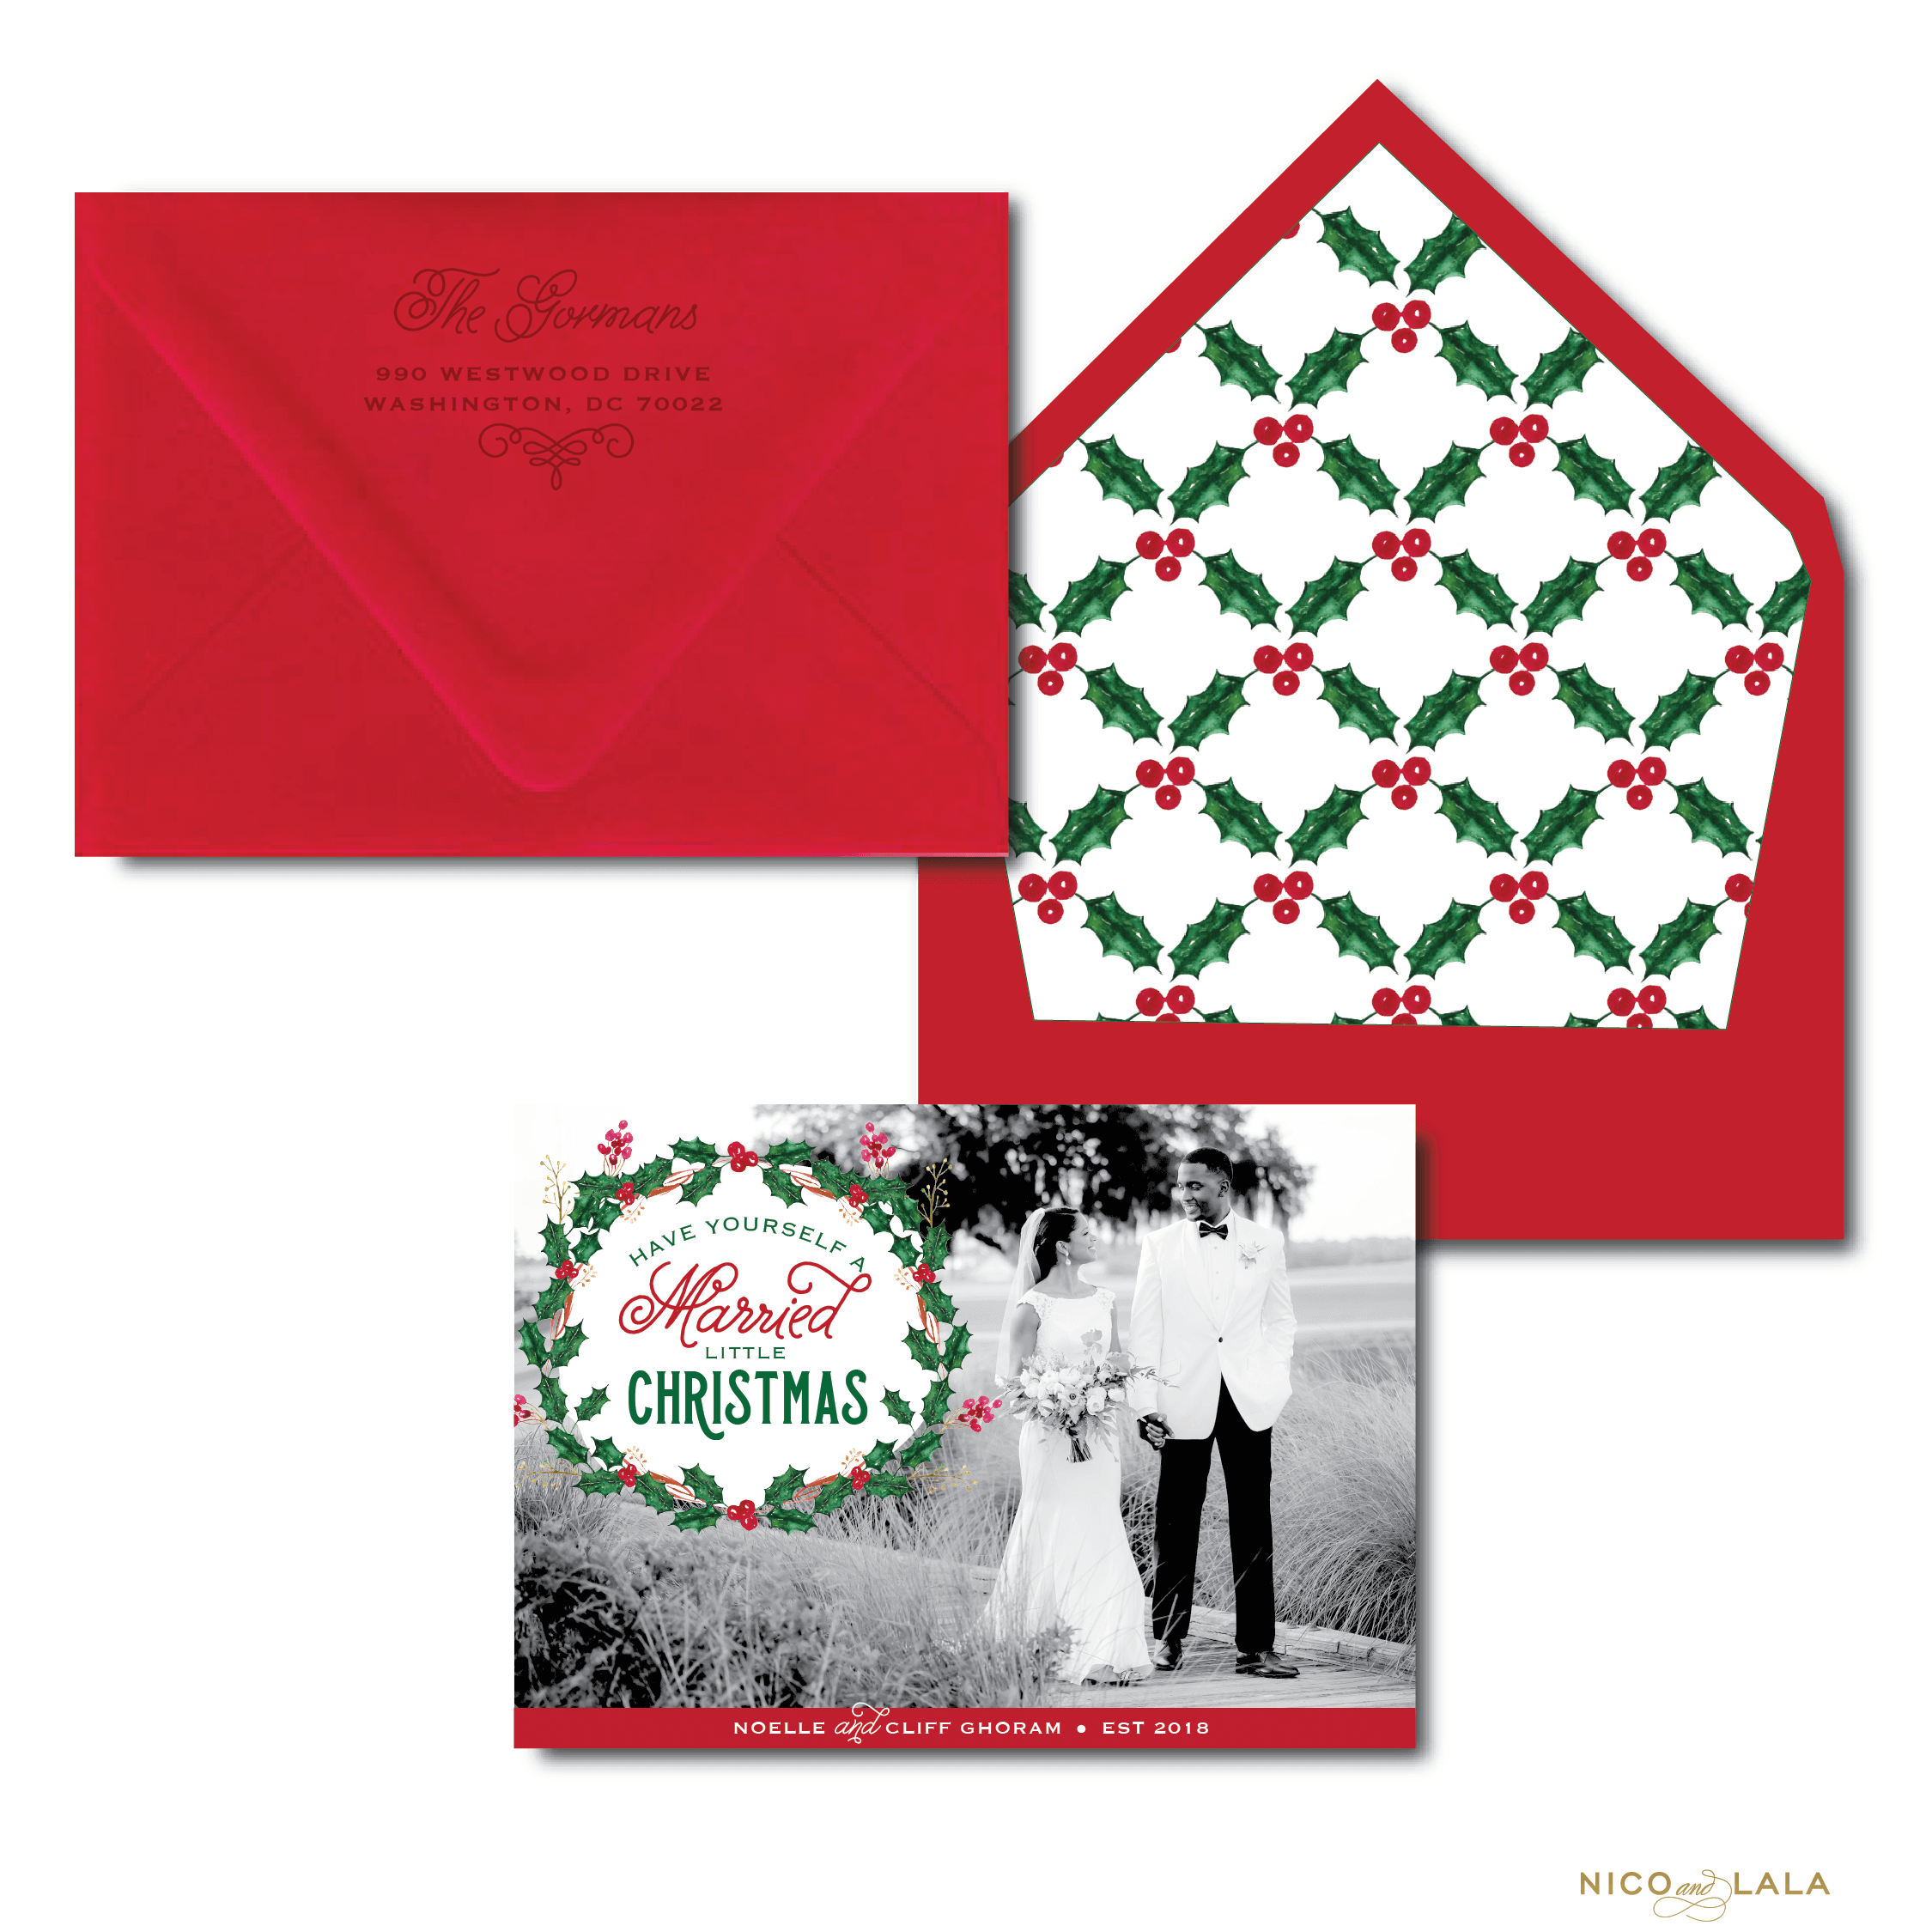 Married Little Christmas Card ⋆ Nico and Lala